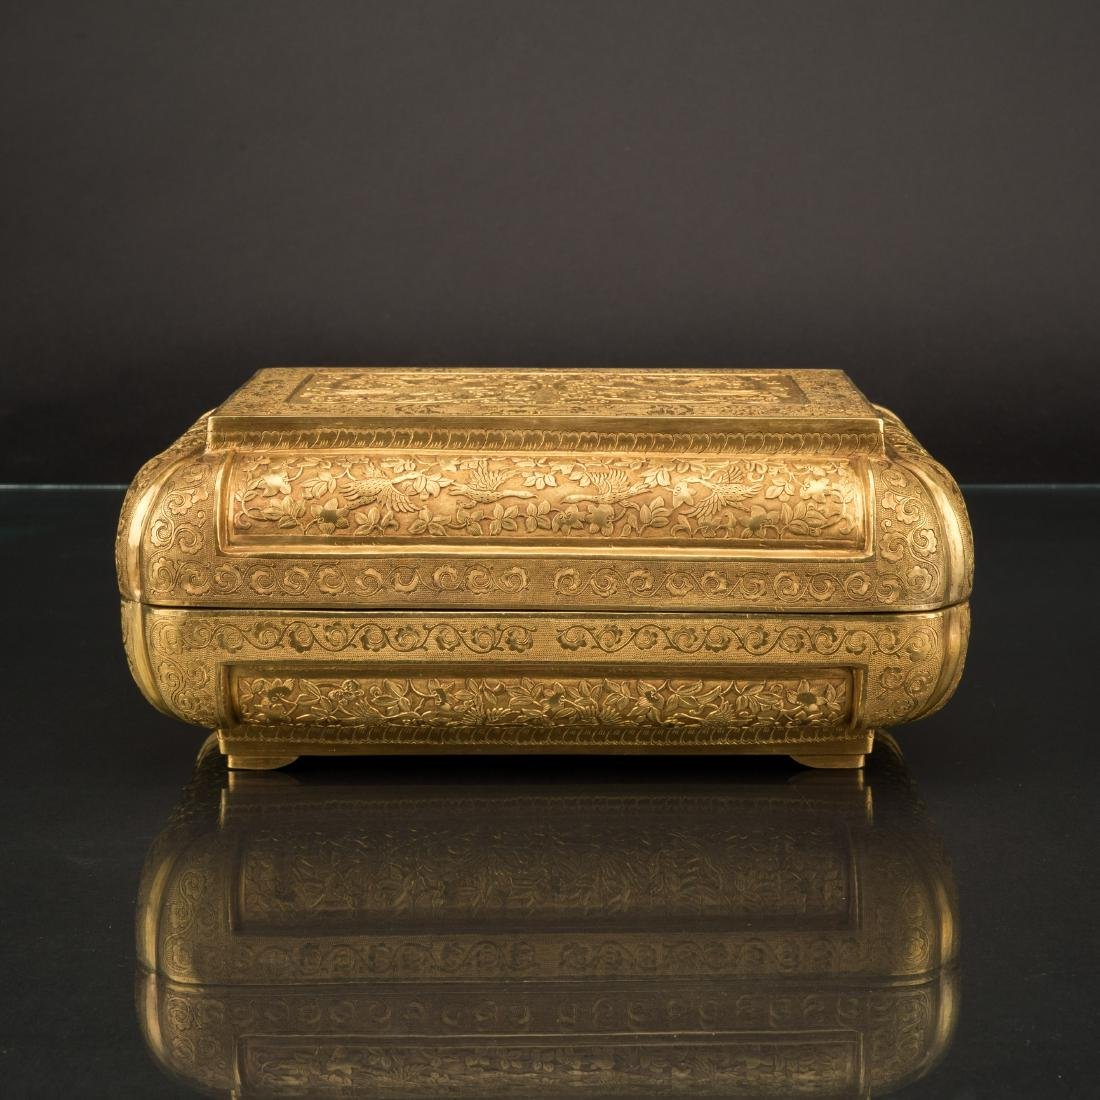 DAOGUANG GILT BRONZE REPOUSSE COVERED GIFT CASKET